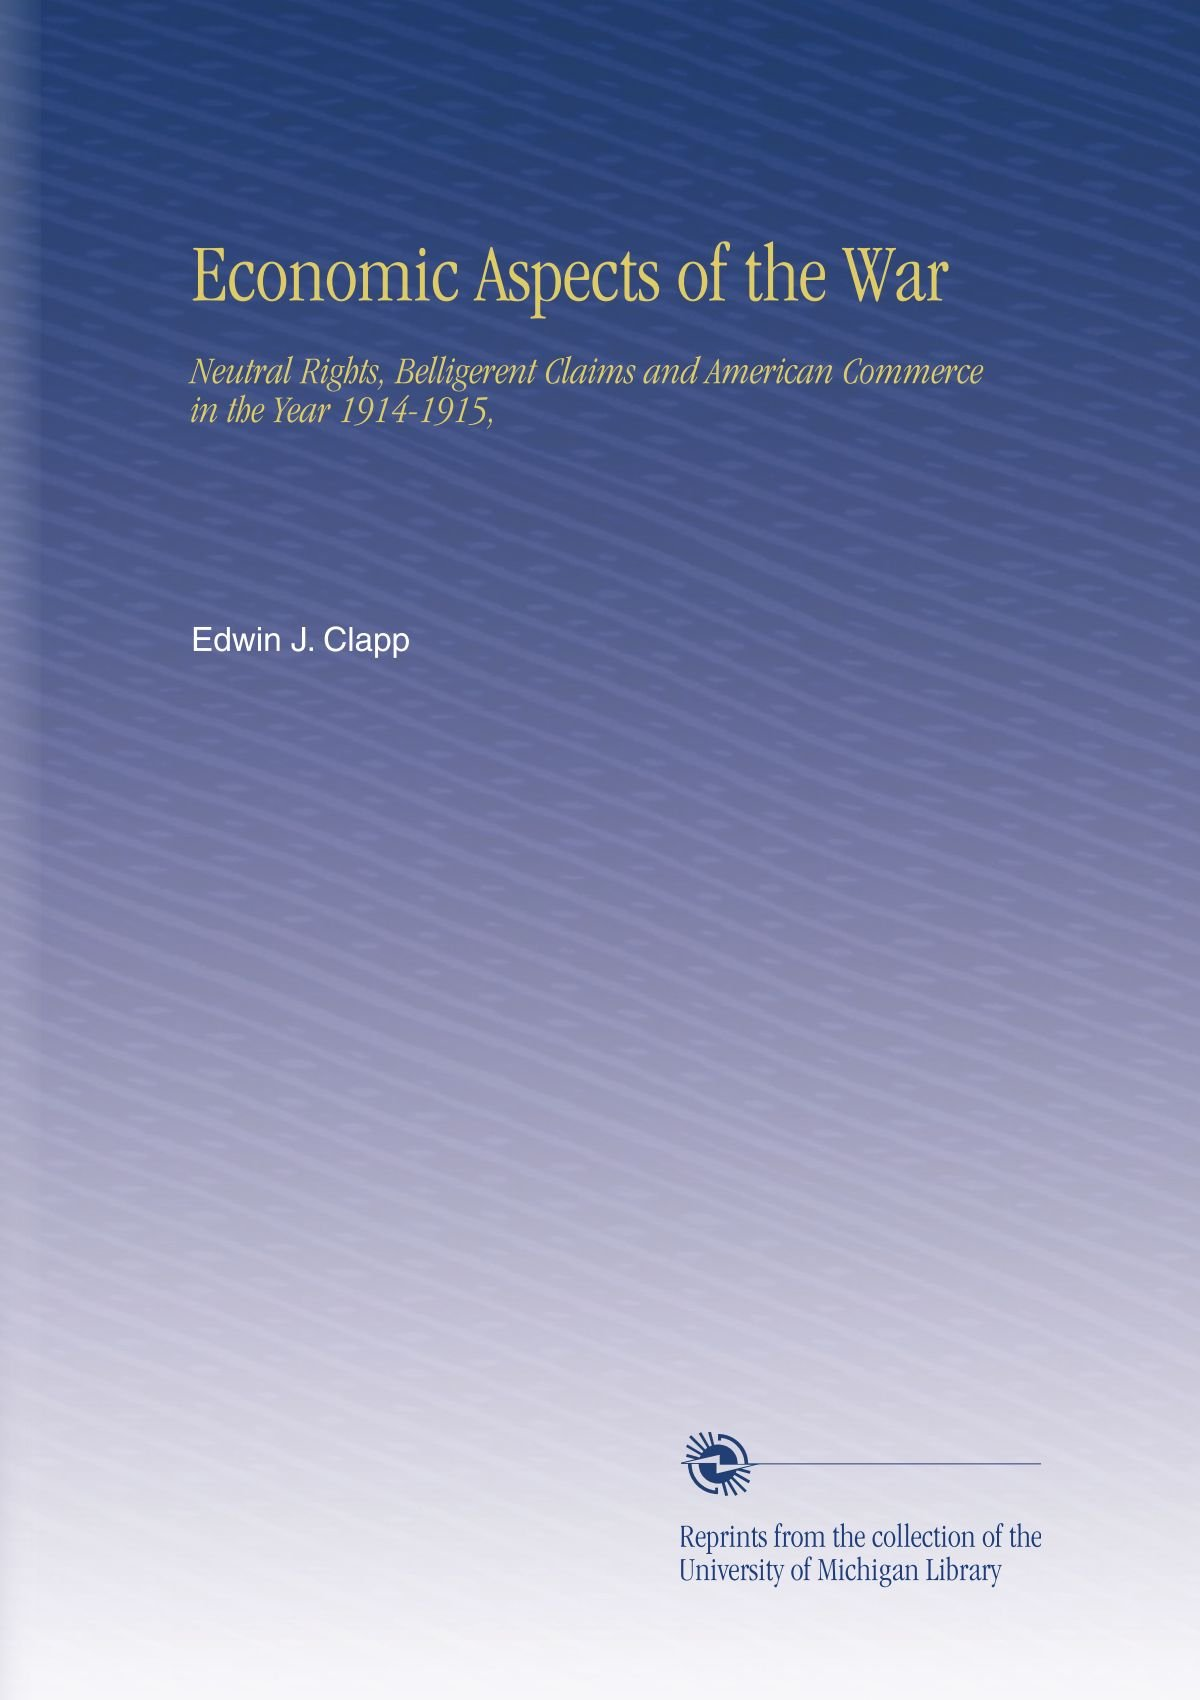 Download Economic Aspects of the War: Neutral Rights, Belligerent Claims and American Commerce in the Year 1914-1915, PDF